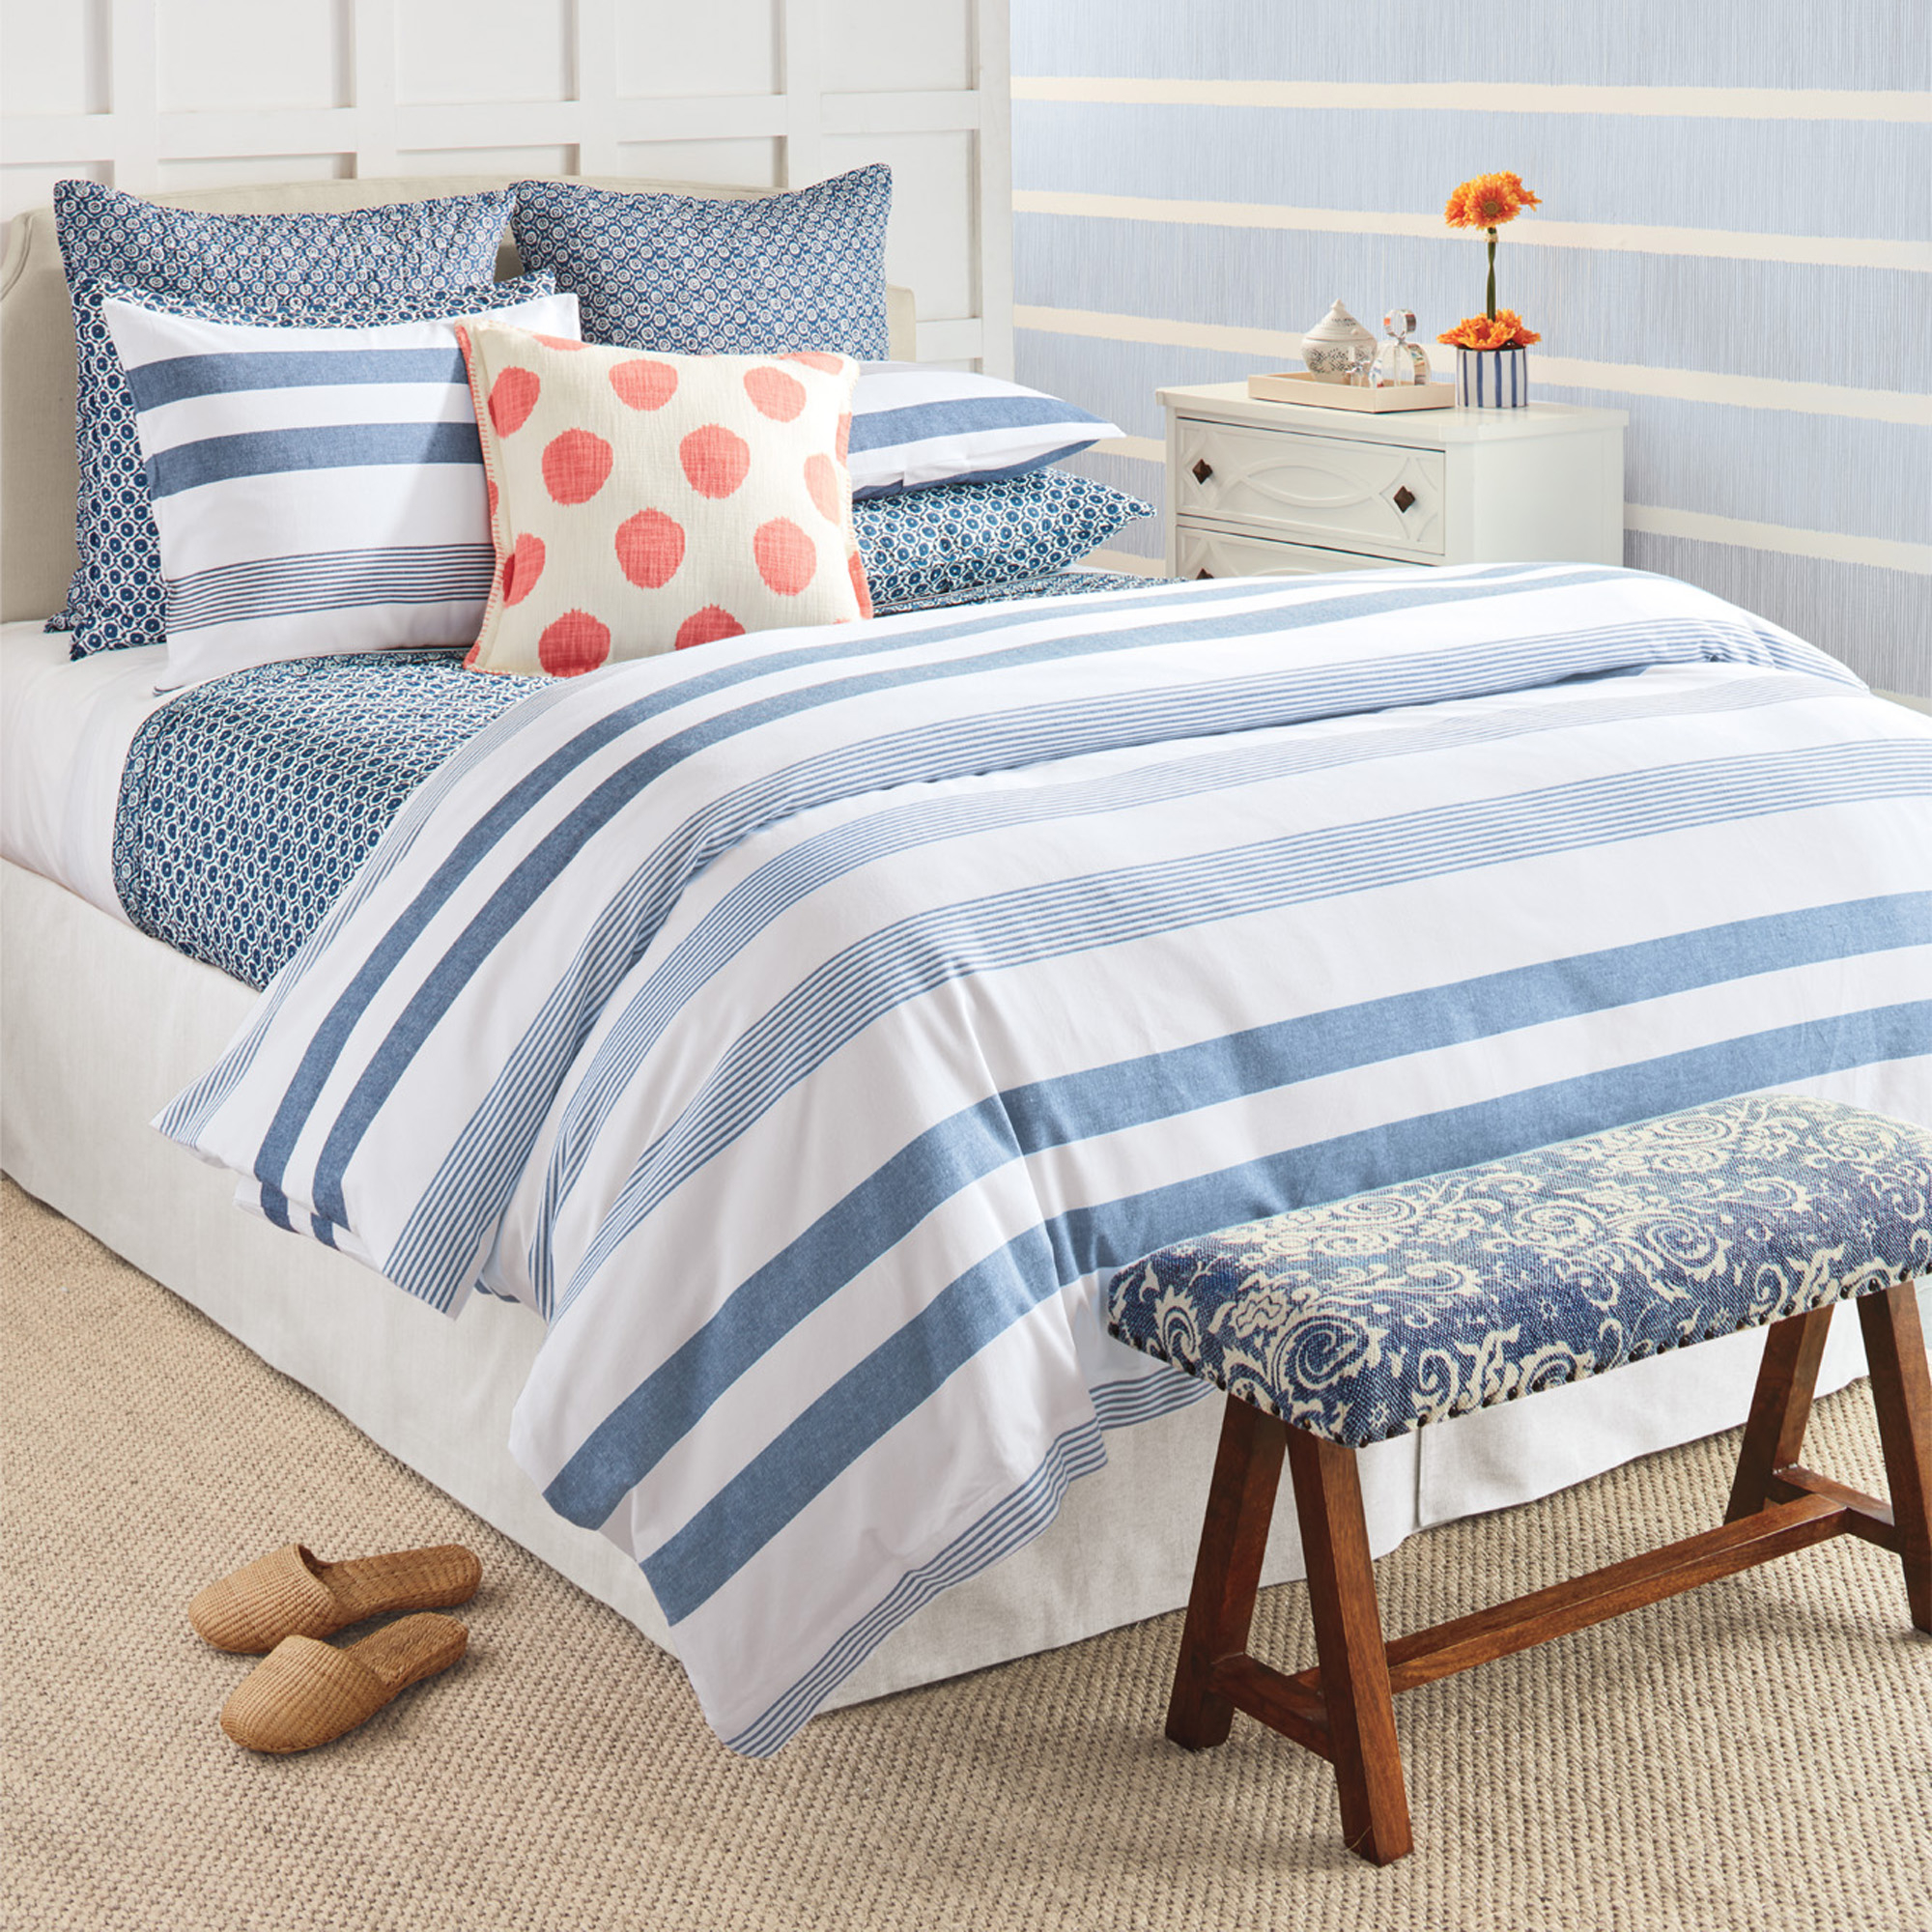 Nantucket Bedding